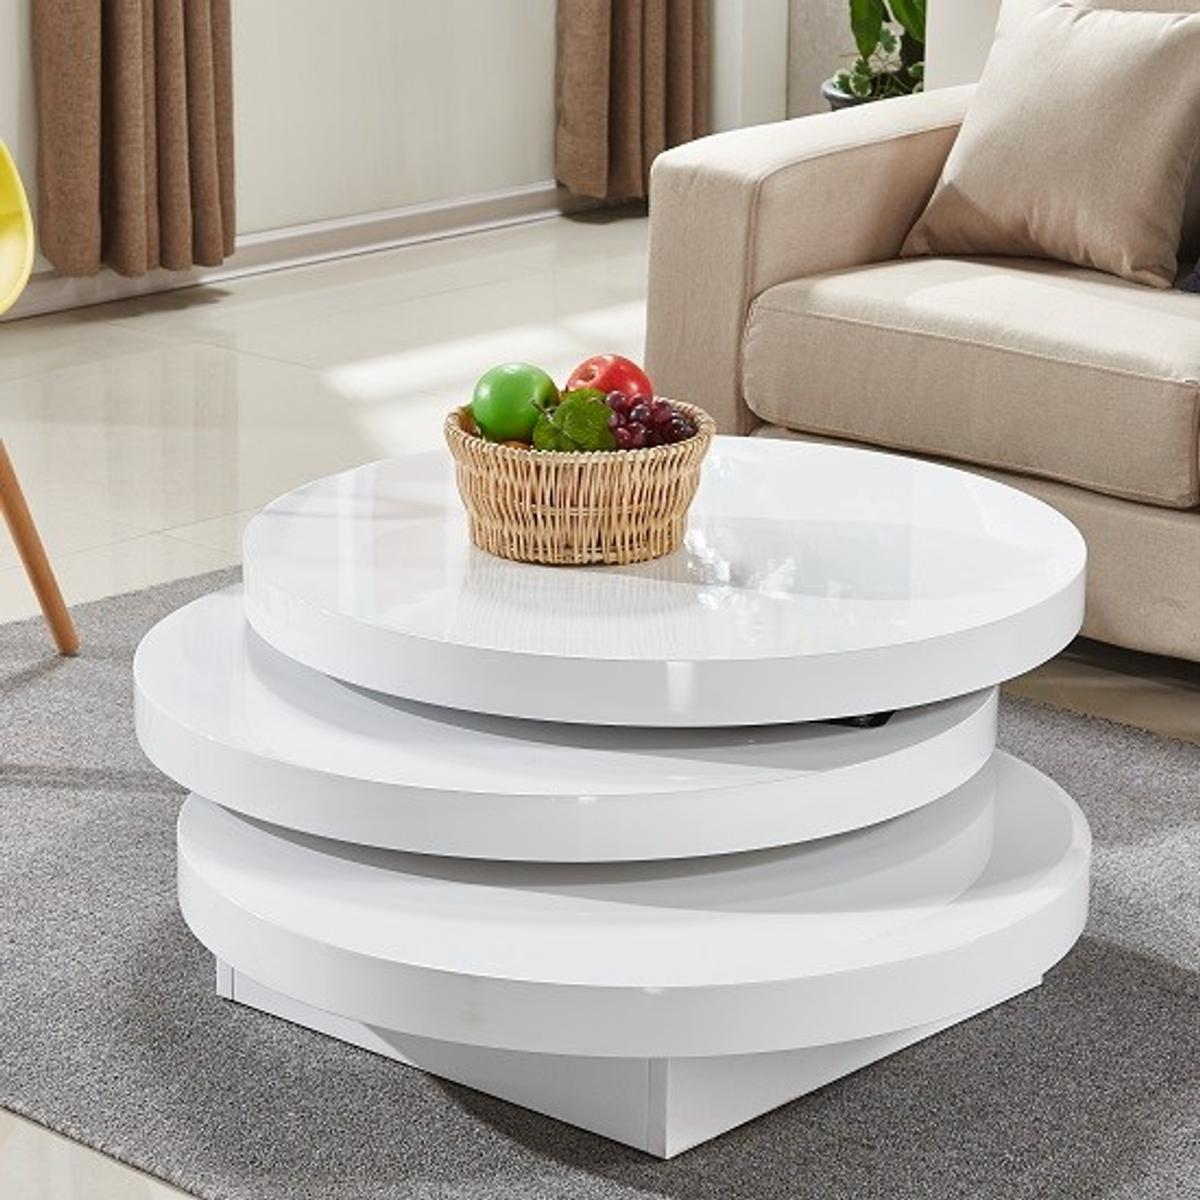 White Rotating Coffee Table Round In Nw3 London For 60 00 For Sale Shpock